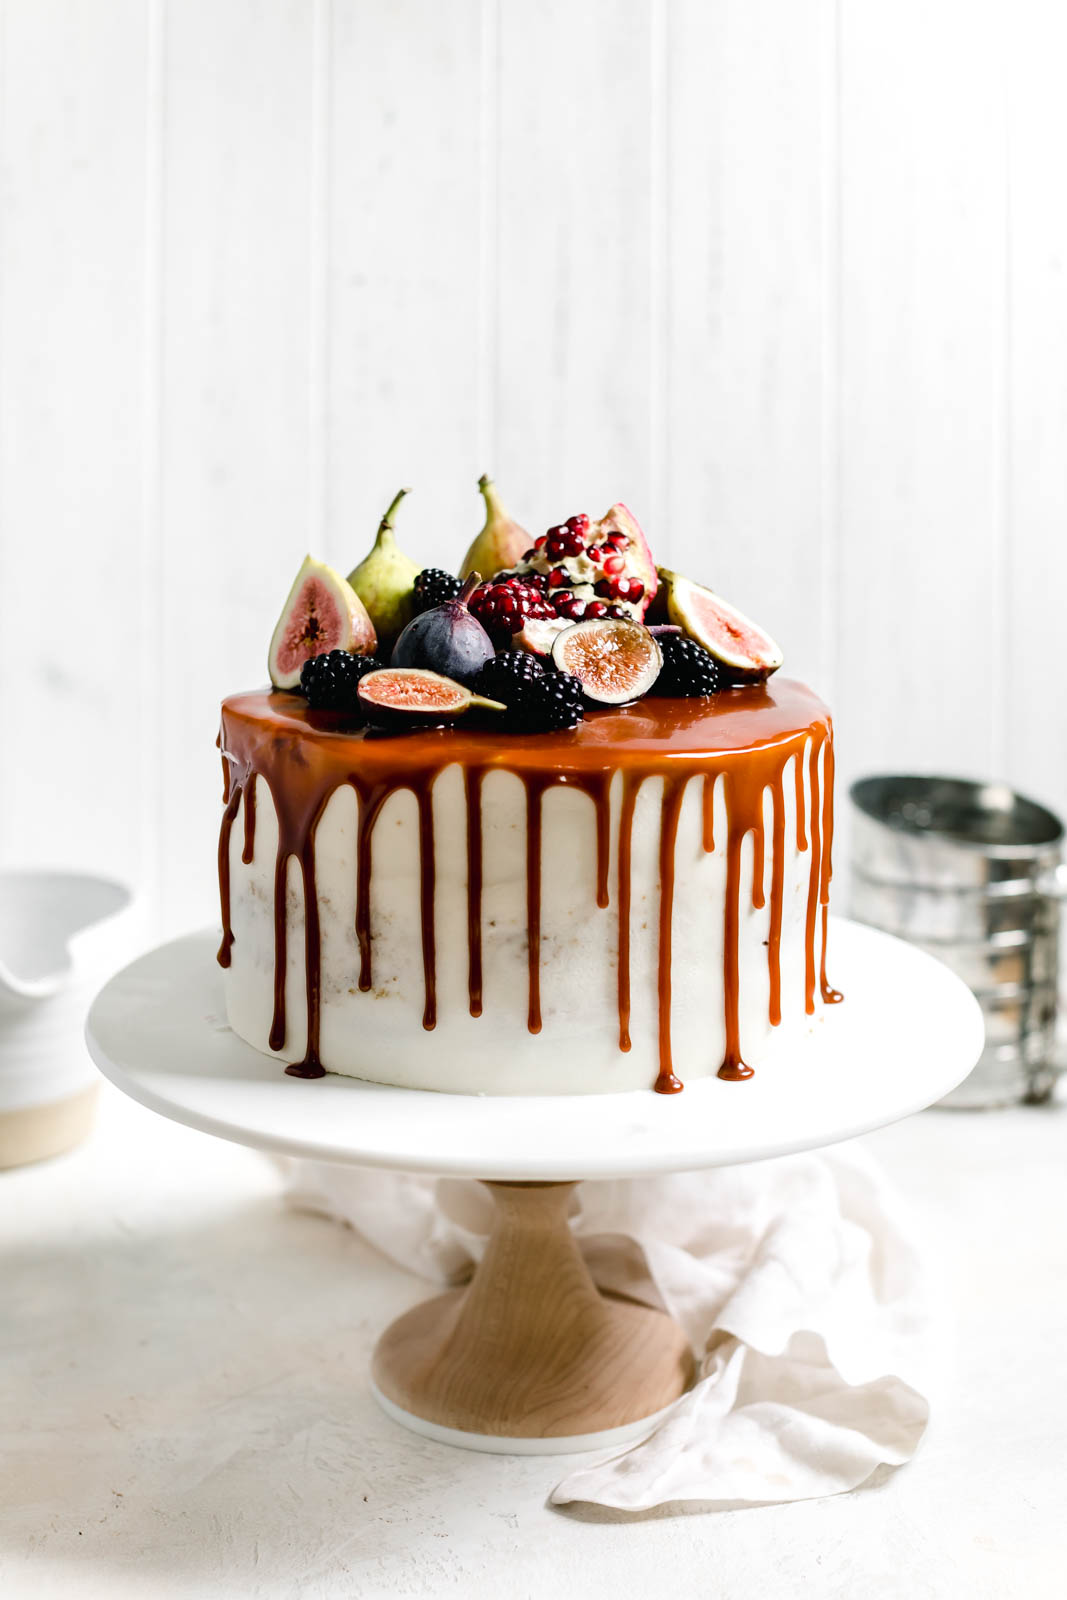 Pumpkin cake on a cake stand